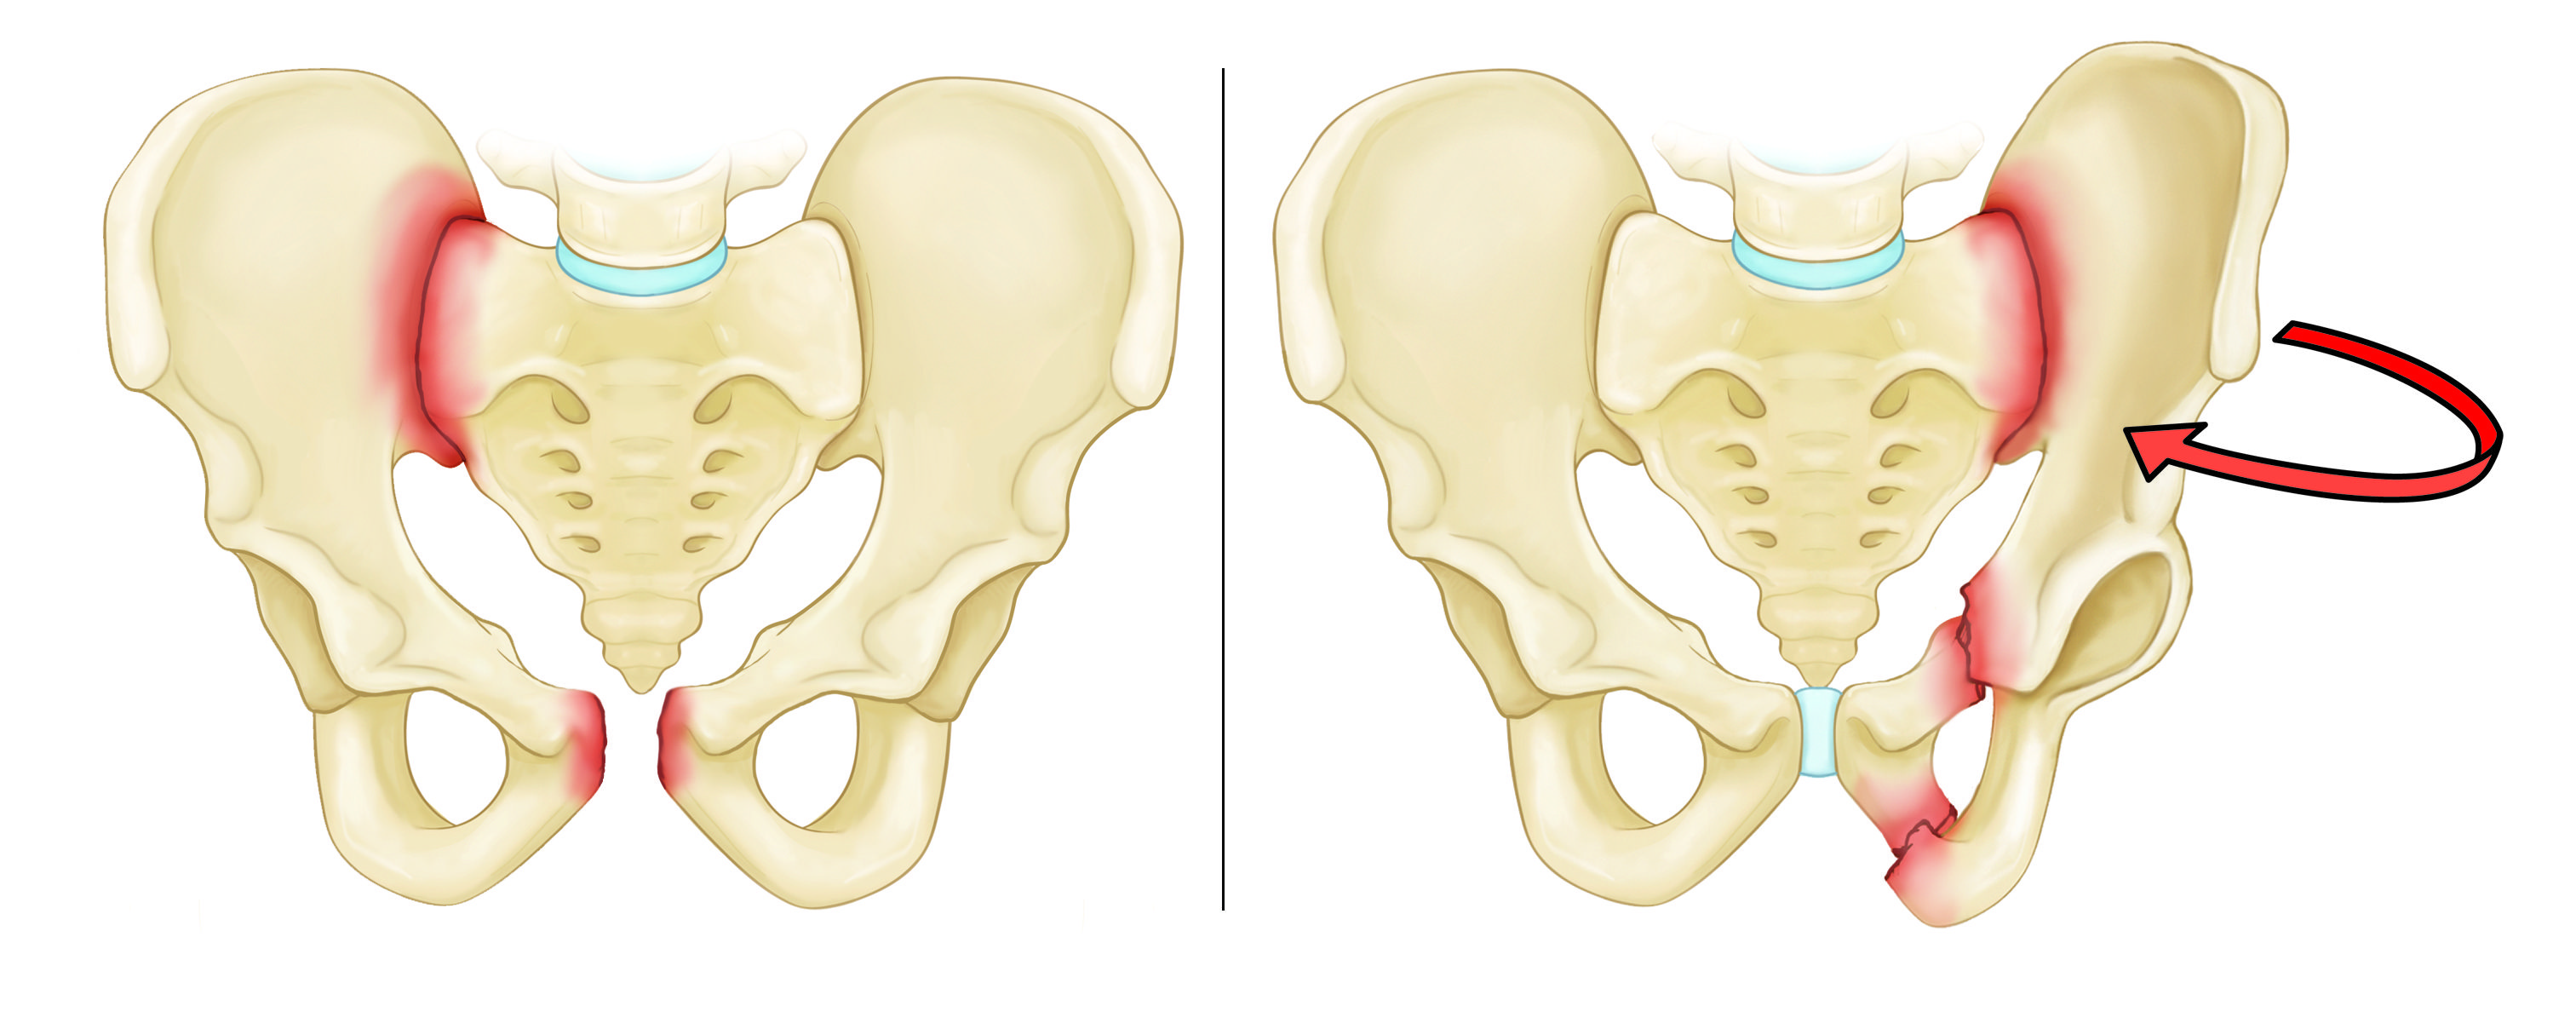 Anterior-posterior compression and lateral compression fractures pelvic fractures